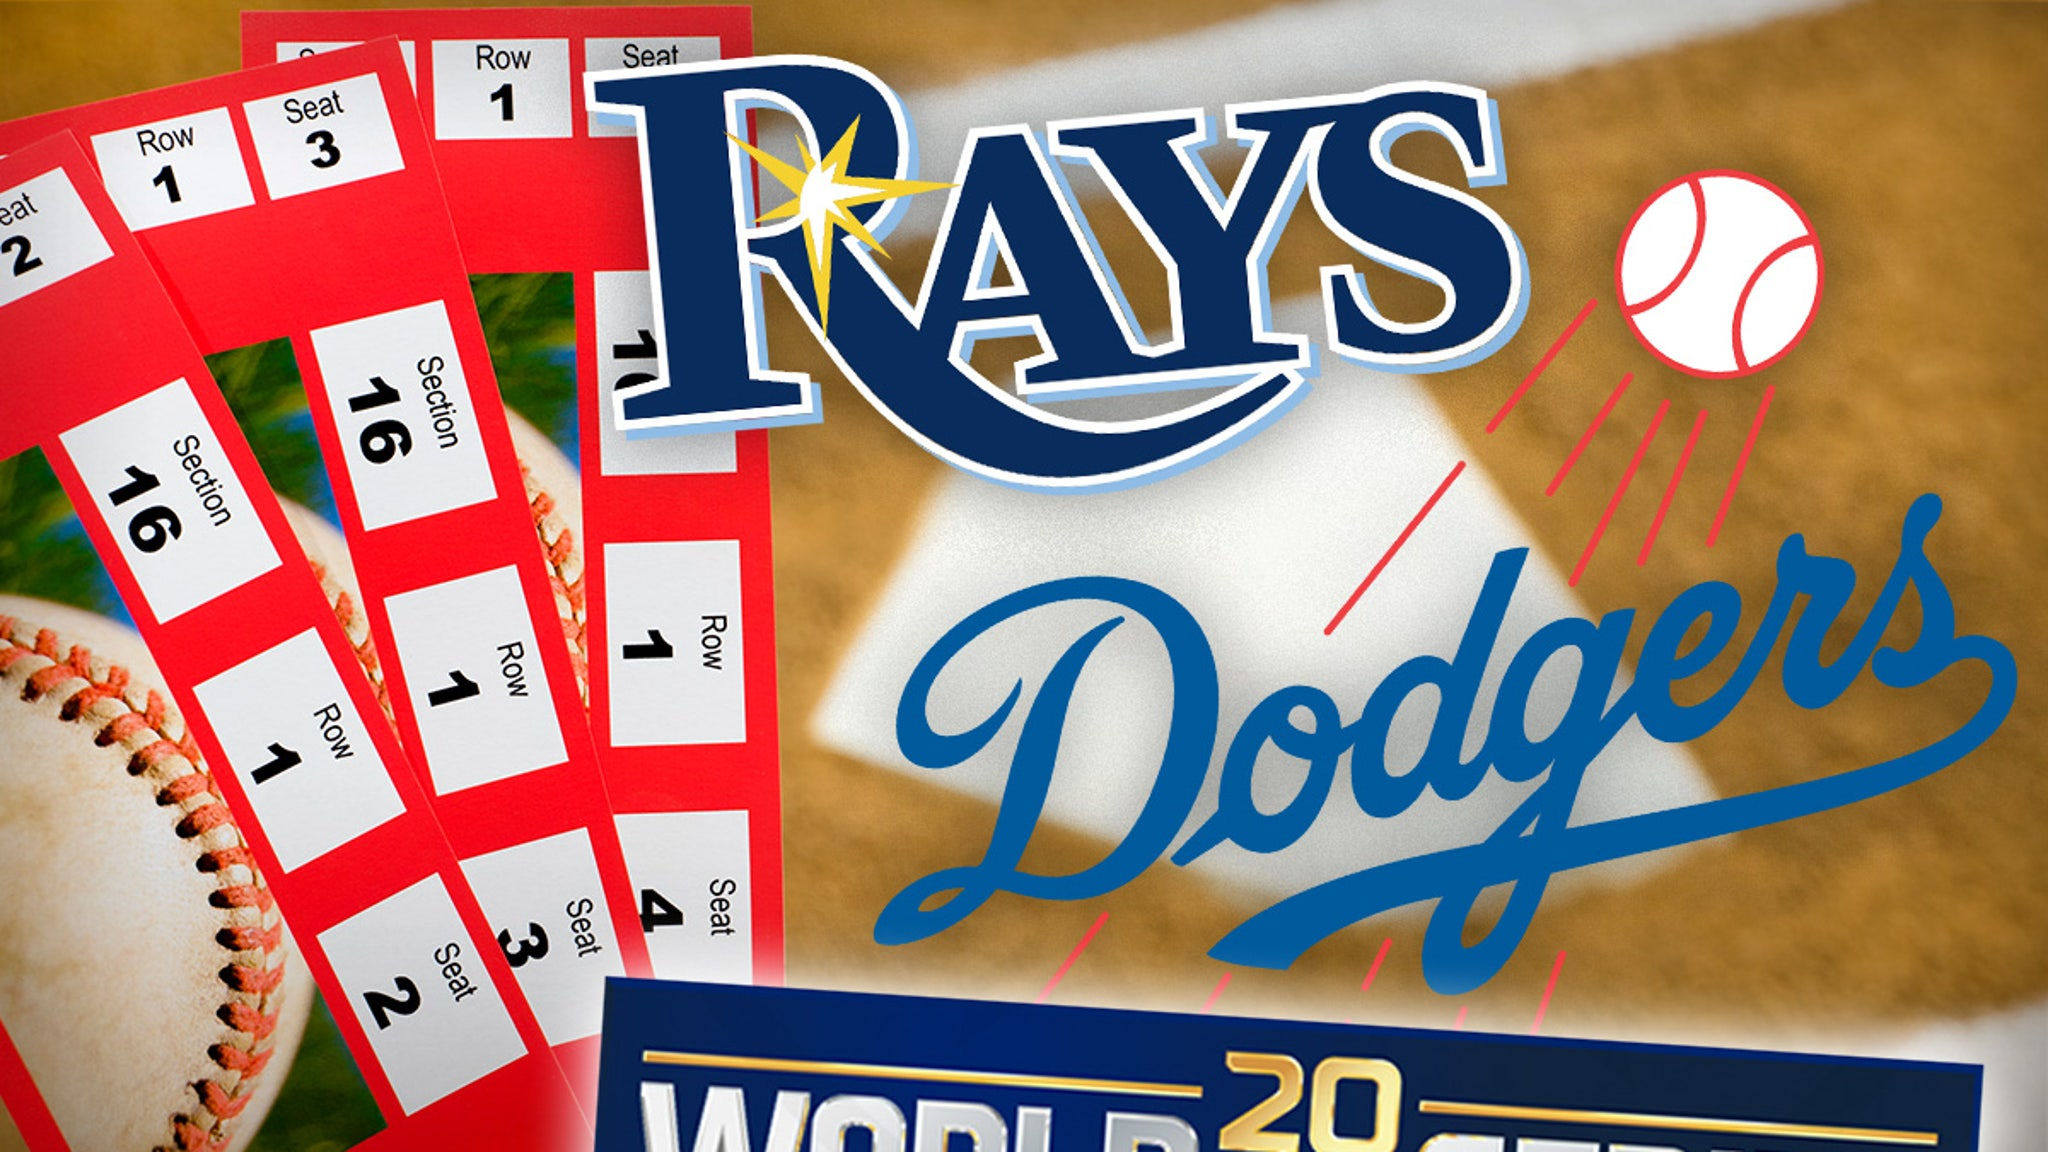 Dodgers Vs. Rays World Series Ticket Prices ... Cheap As Hell!!!